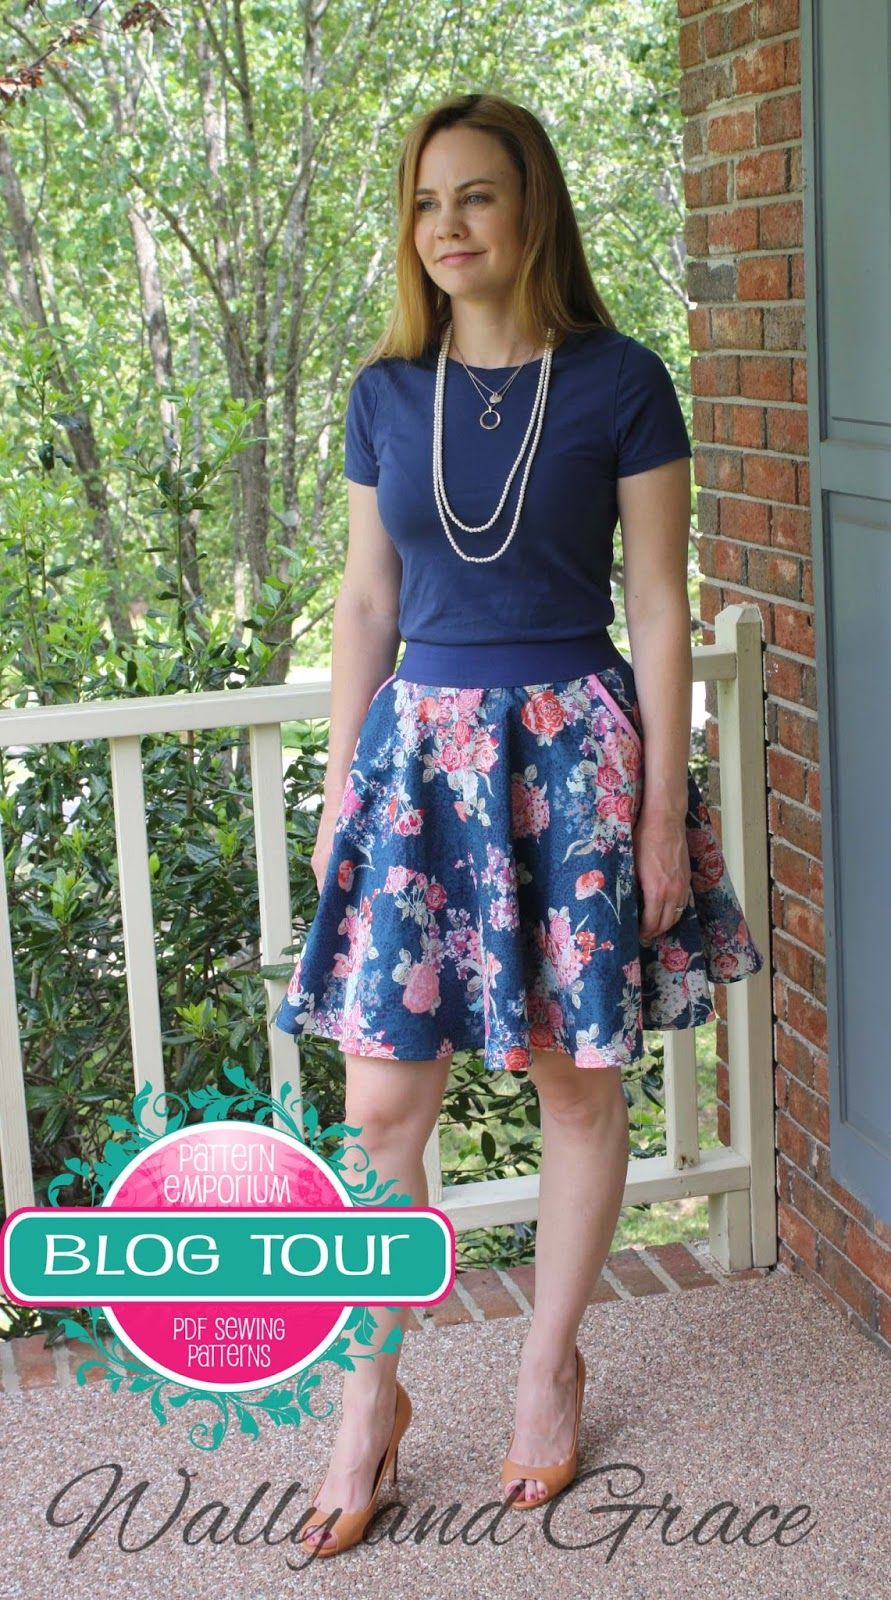 Wally And Grace Designs Pattern Emporium Skater Skirt Clothing